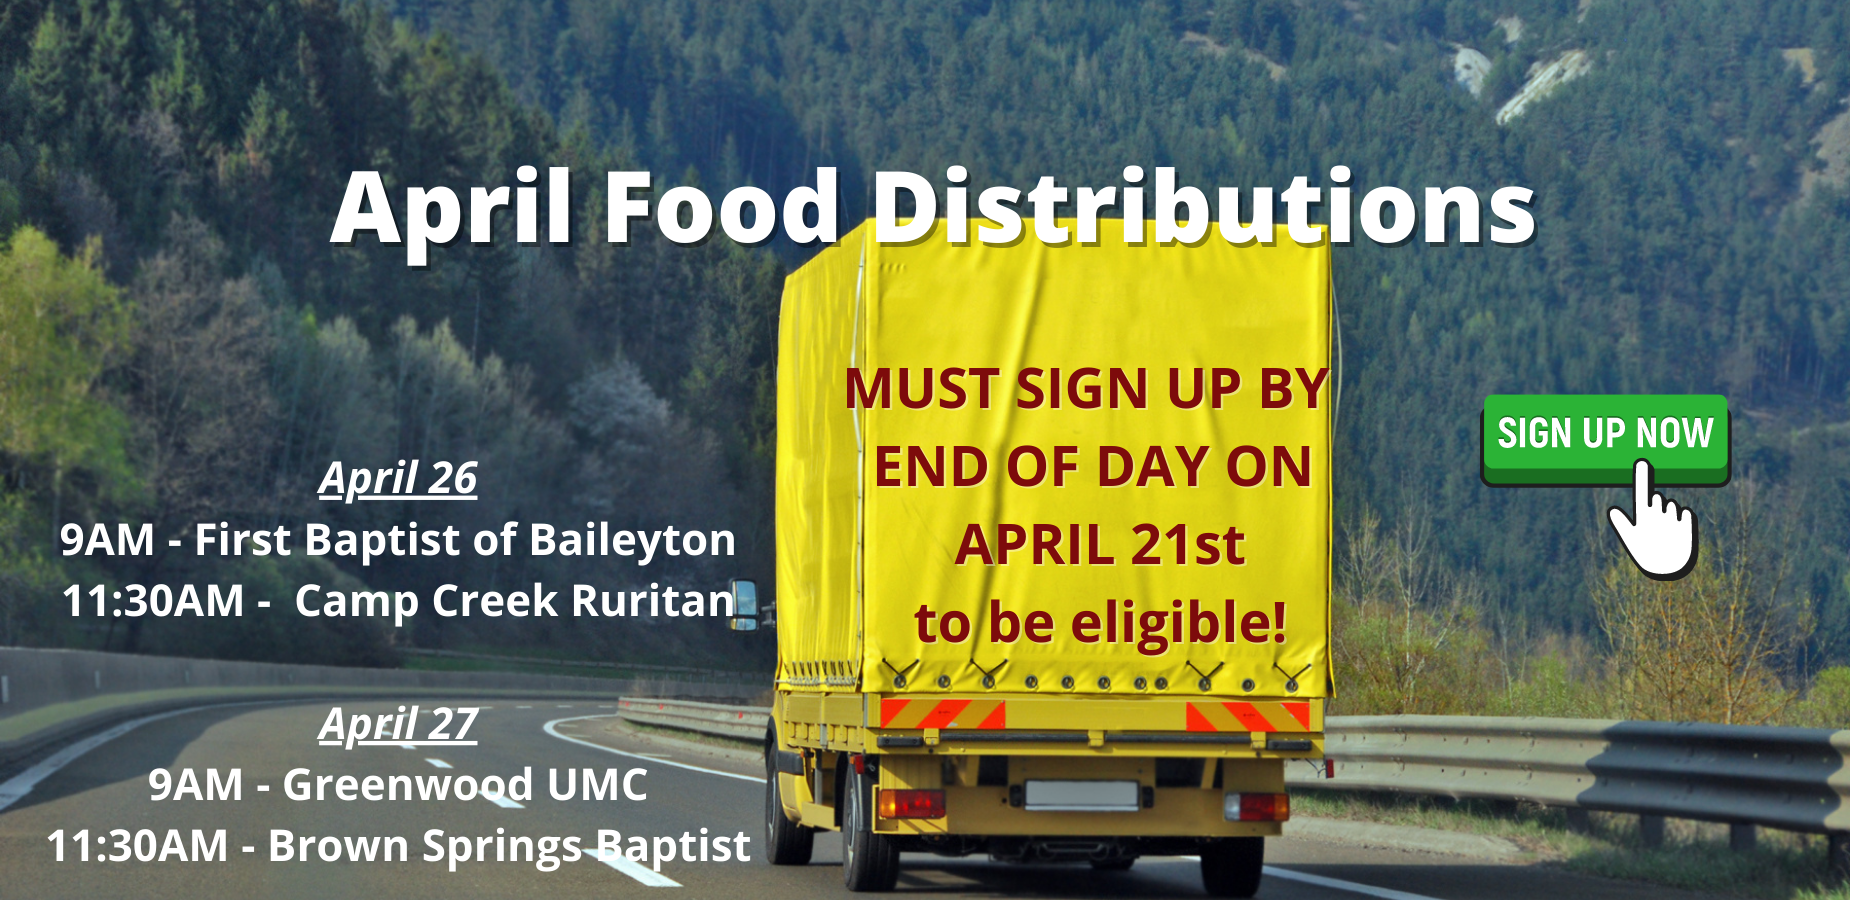 April Food Distribution Registration